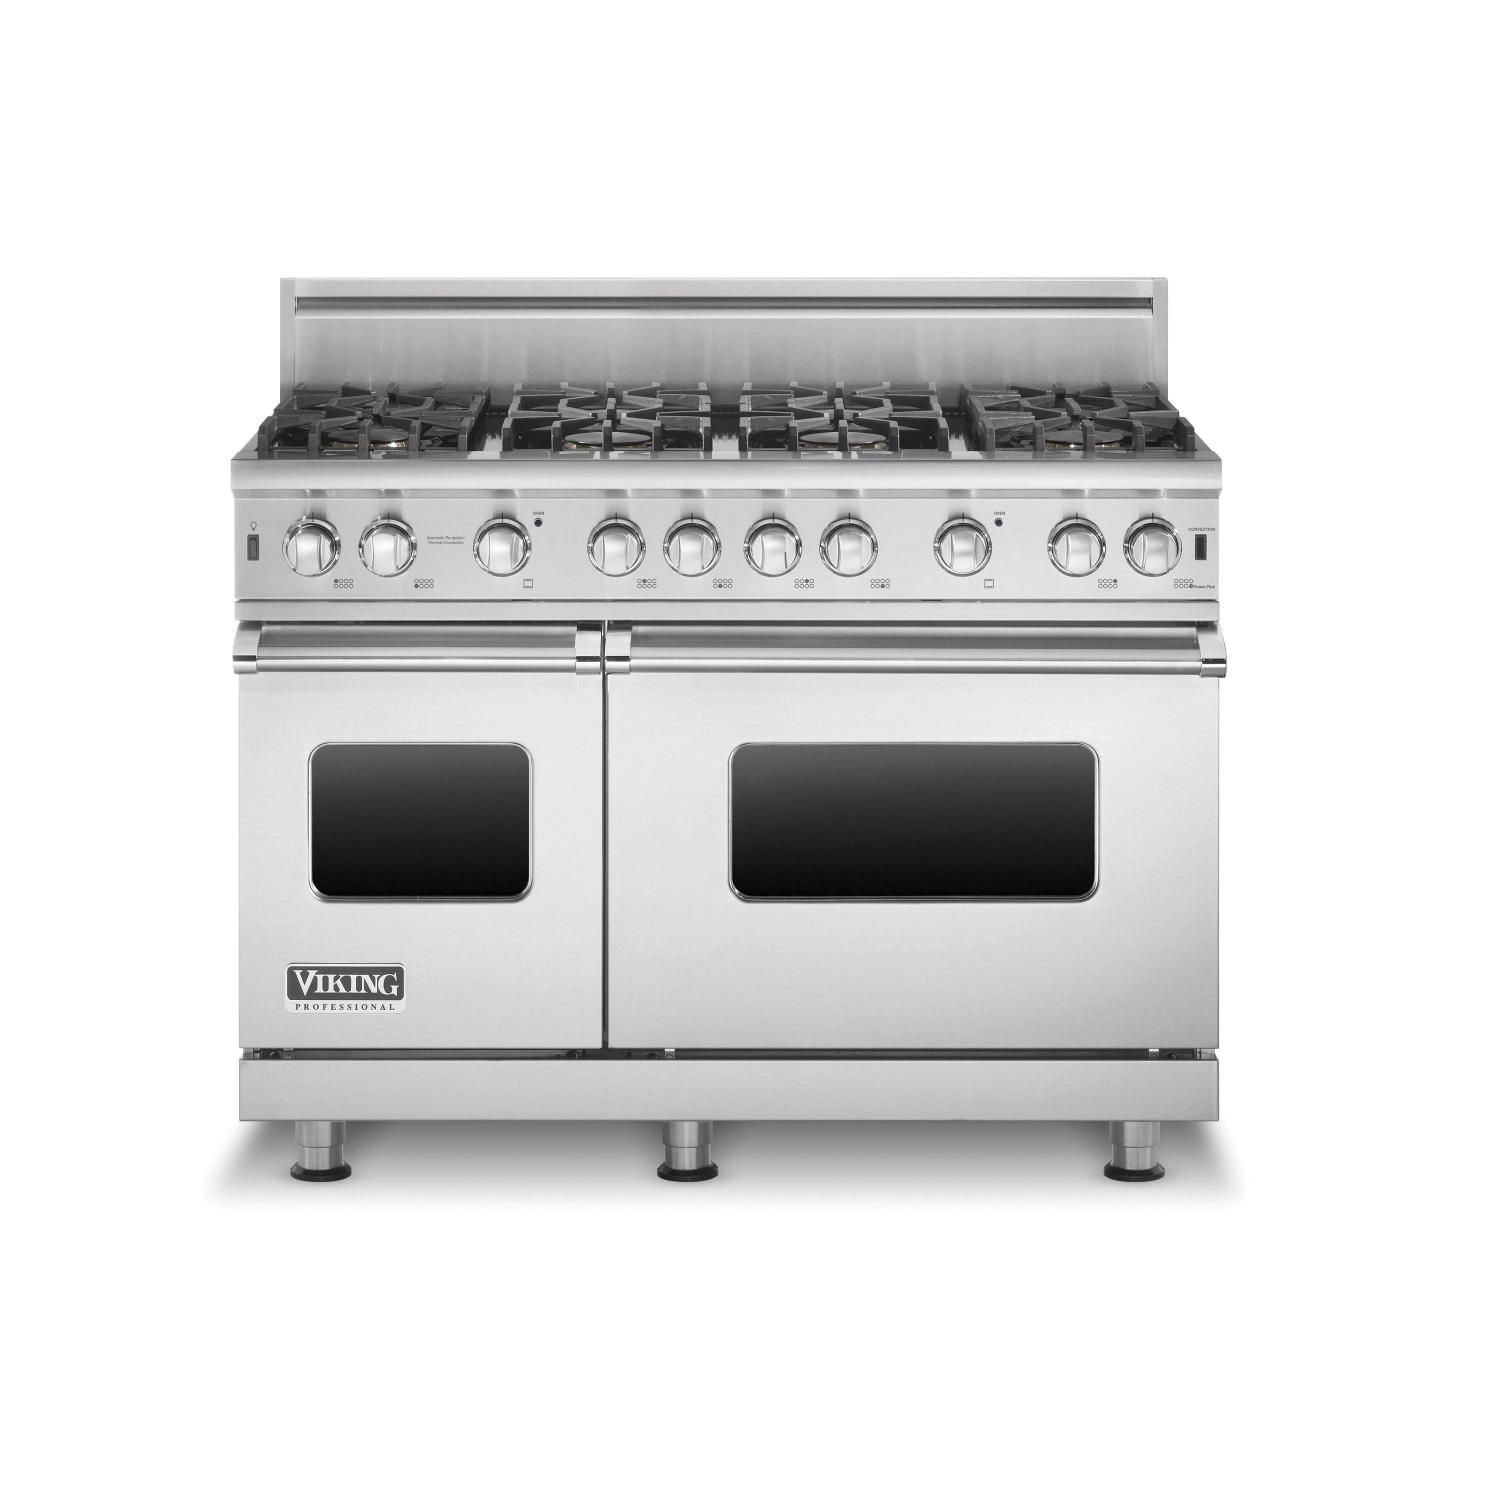 Viking Professional 5 Series 48 Inch 8 Burner Natural Gas Range Stainless Steel Vgr5488bss With Images Viking Range Dream Kitchens Design Kitchen Design